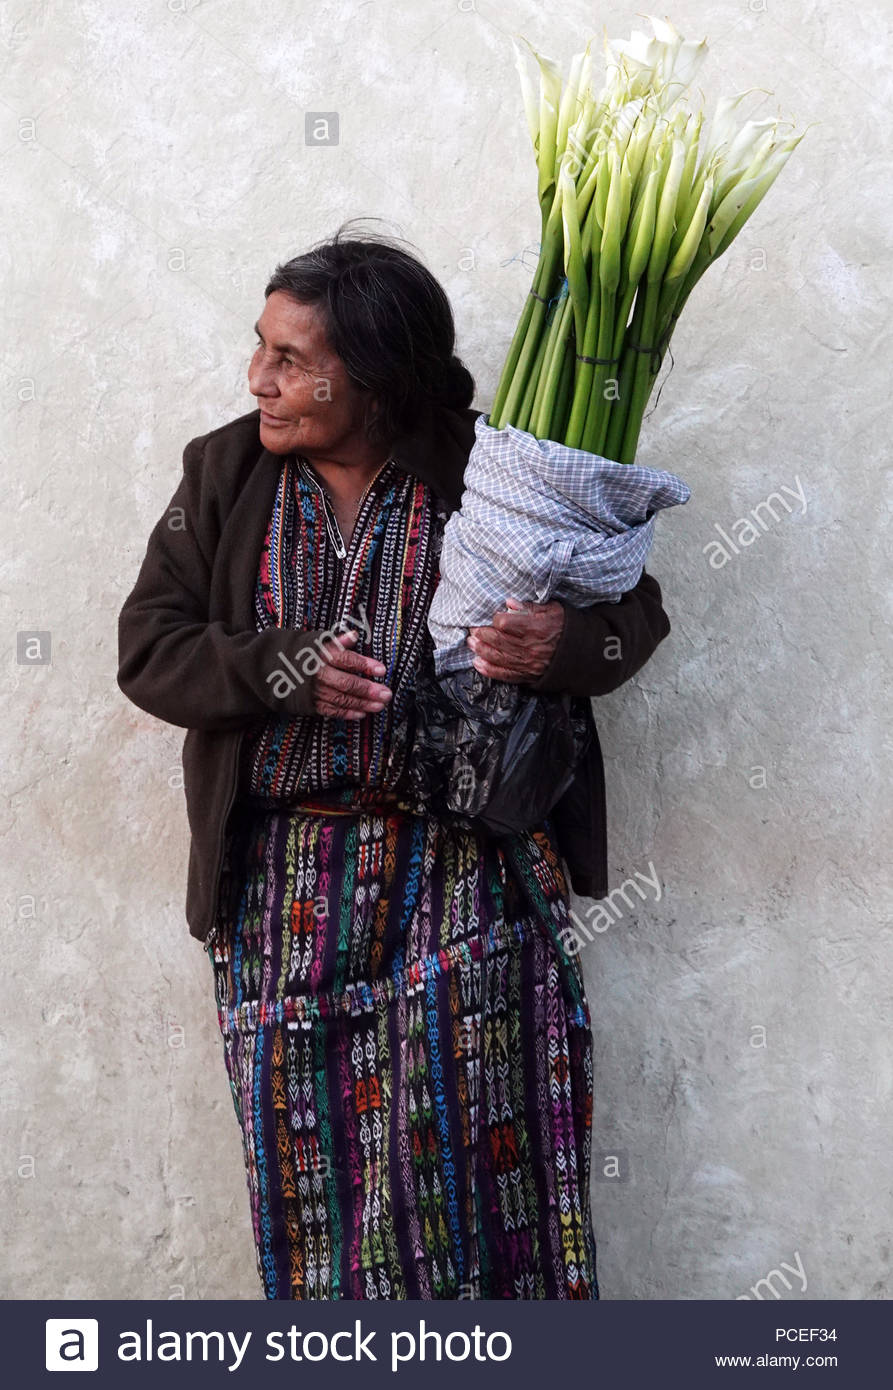 Indigenous Maya Woman in her Traditional Handwoven Solola Textiles Selling Cala Lily Flowers in Antigua, Guatemala - Stock Image